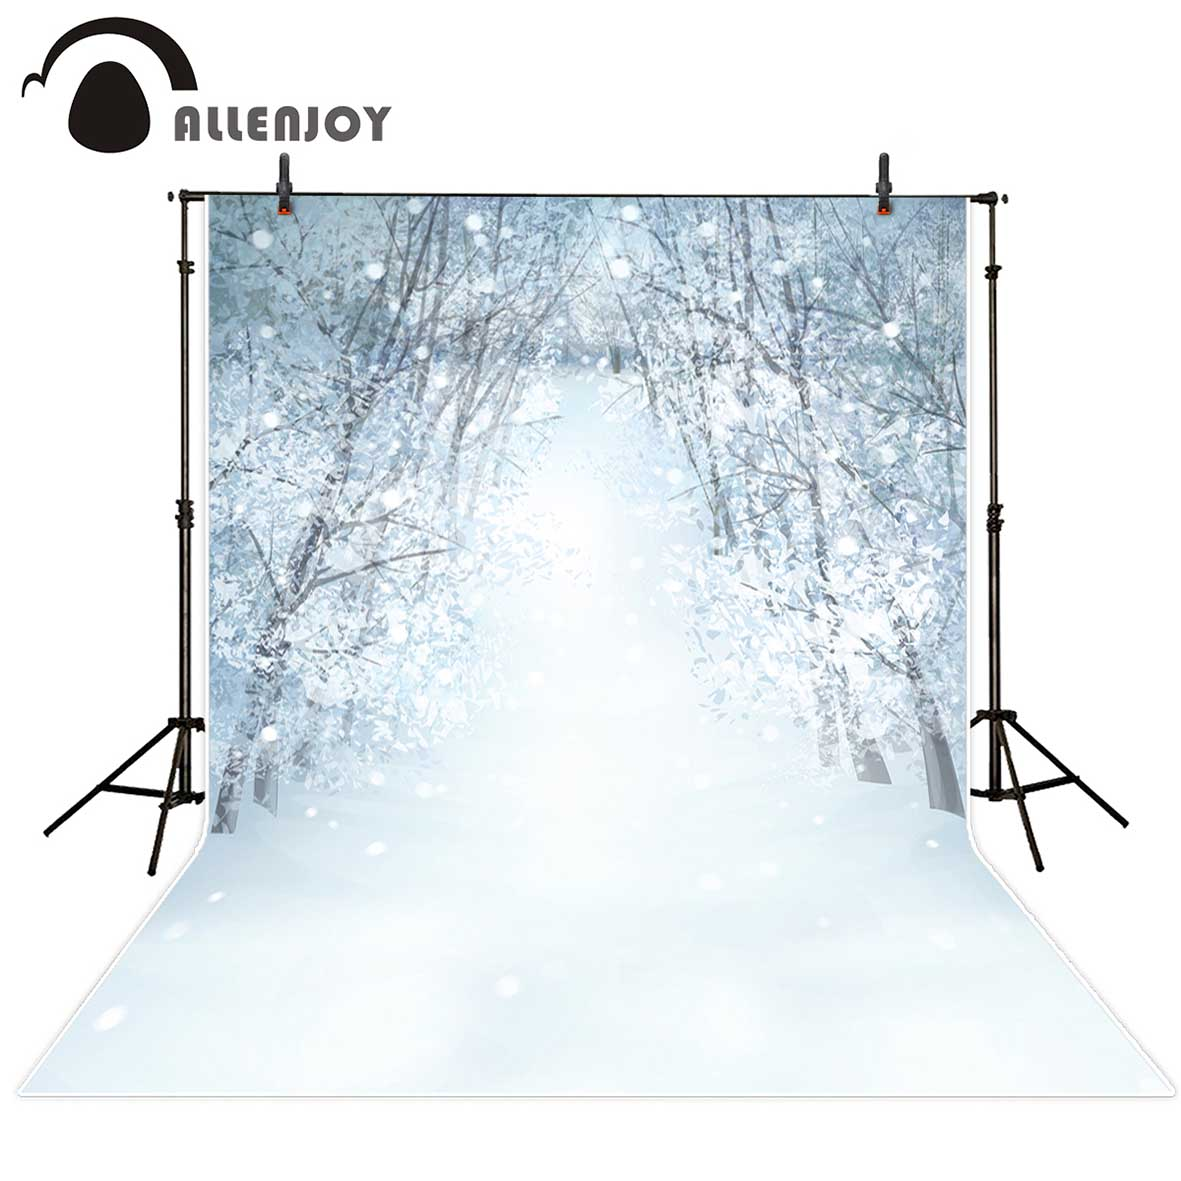 Allenjoy photography backdrop Winter snow forest white wonderland new backdrop photocall photo printed customize exclduing stand vinyl cloth high quality computer printed winter wonderland backdrop white snow photography backgrounds